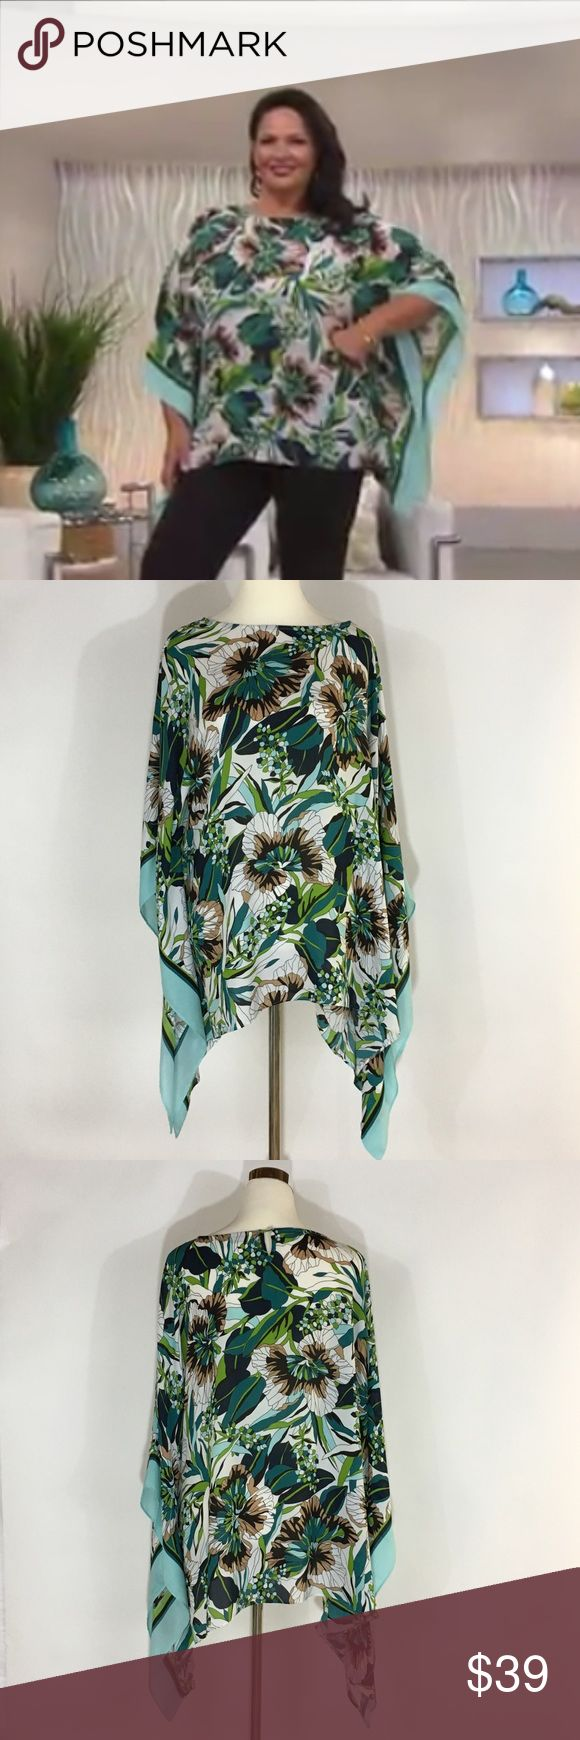 """Joan Rivers Tropical Floral Print Caftan Top Put this on, and you'll never want to take it off. Where else can you get so much drama in one piece? This top features open batwing sleeves, side slits, and a captivating print. From the Joan Rivers Classics Collection * Teal Floral print with striped border, open batwing sleeves, side stitching, side slits * 1X(18W-20W) * Relaxed fit; Approx length measurements 29"""" * 100% polyester * Machine wash, line dry * Made in China  Pristine Condition…"""